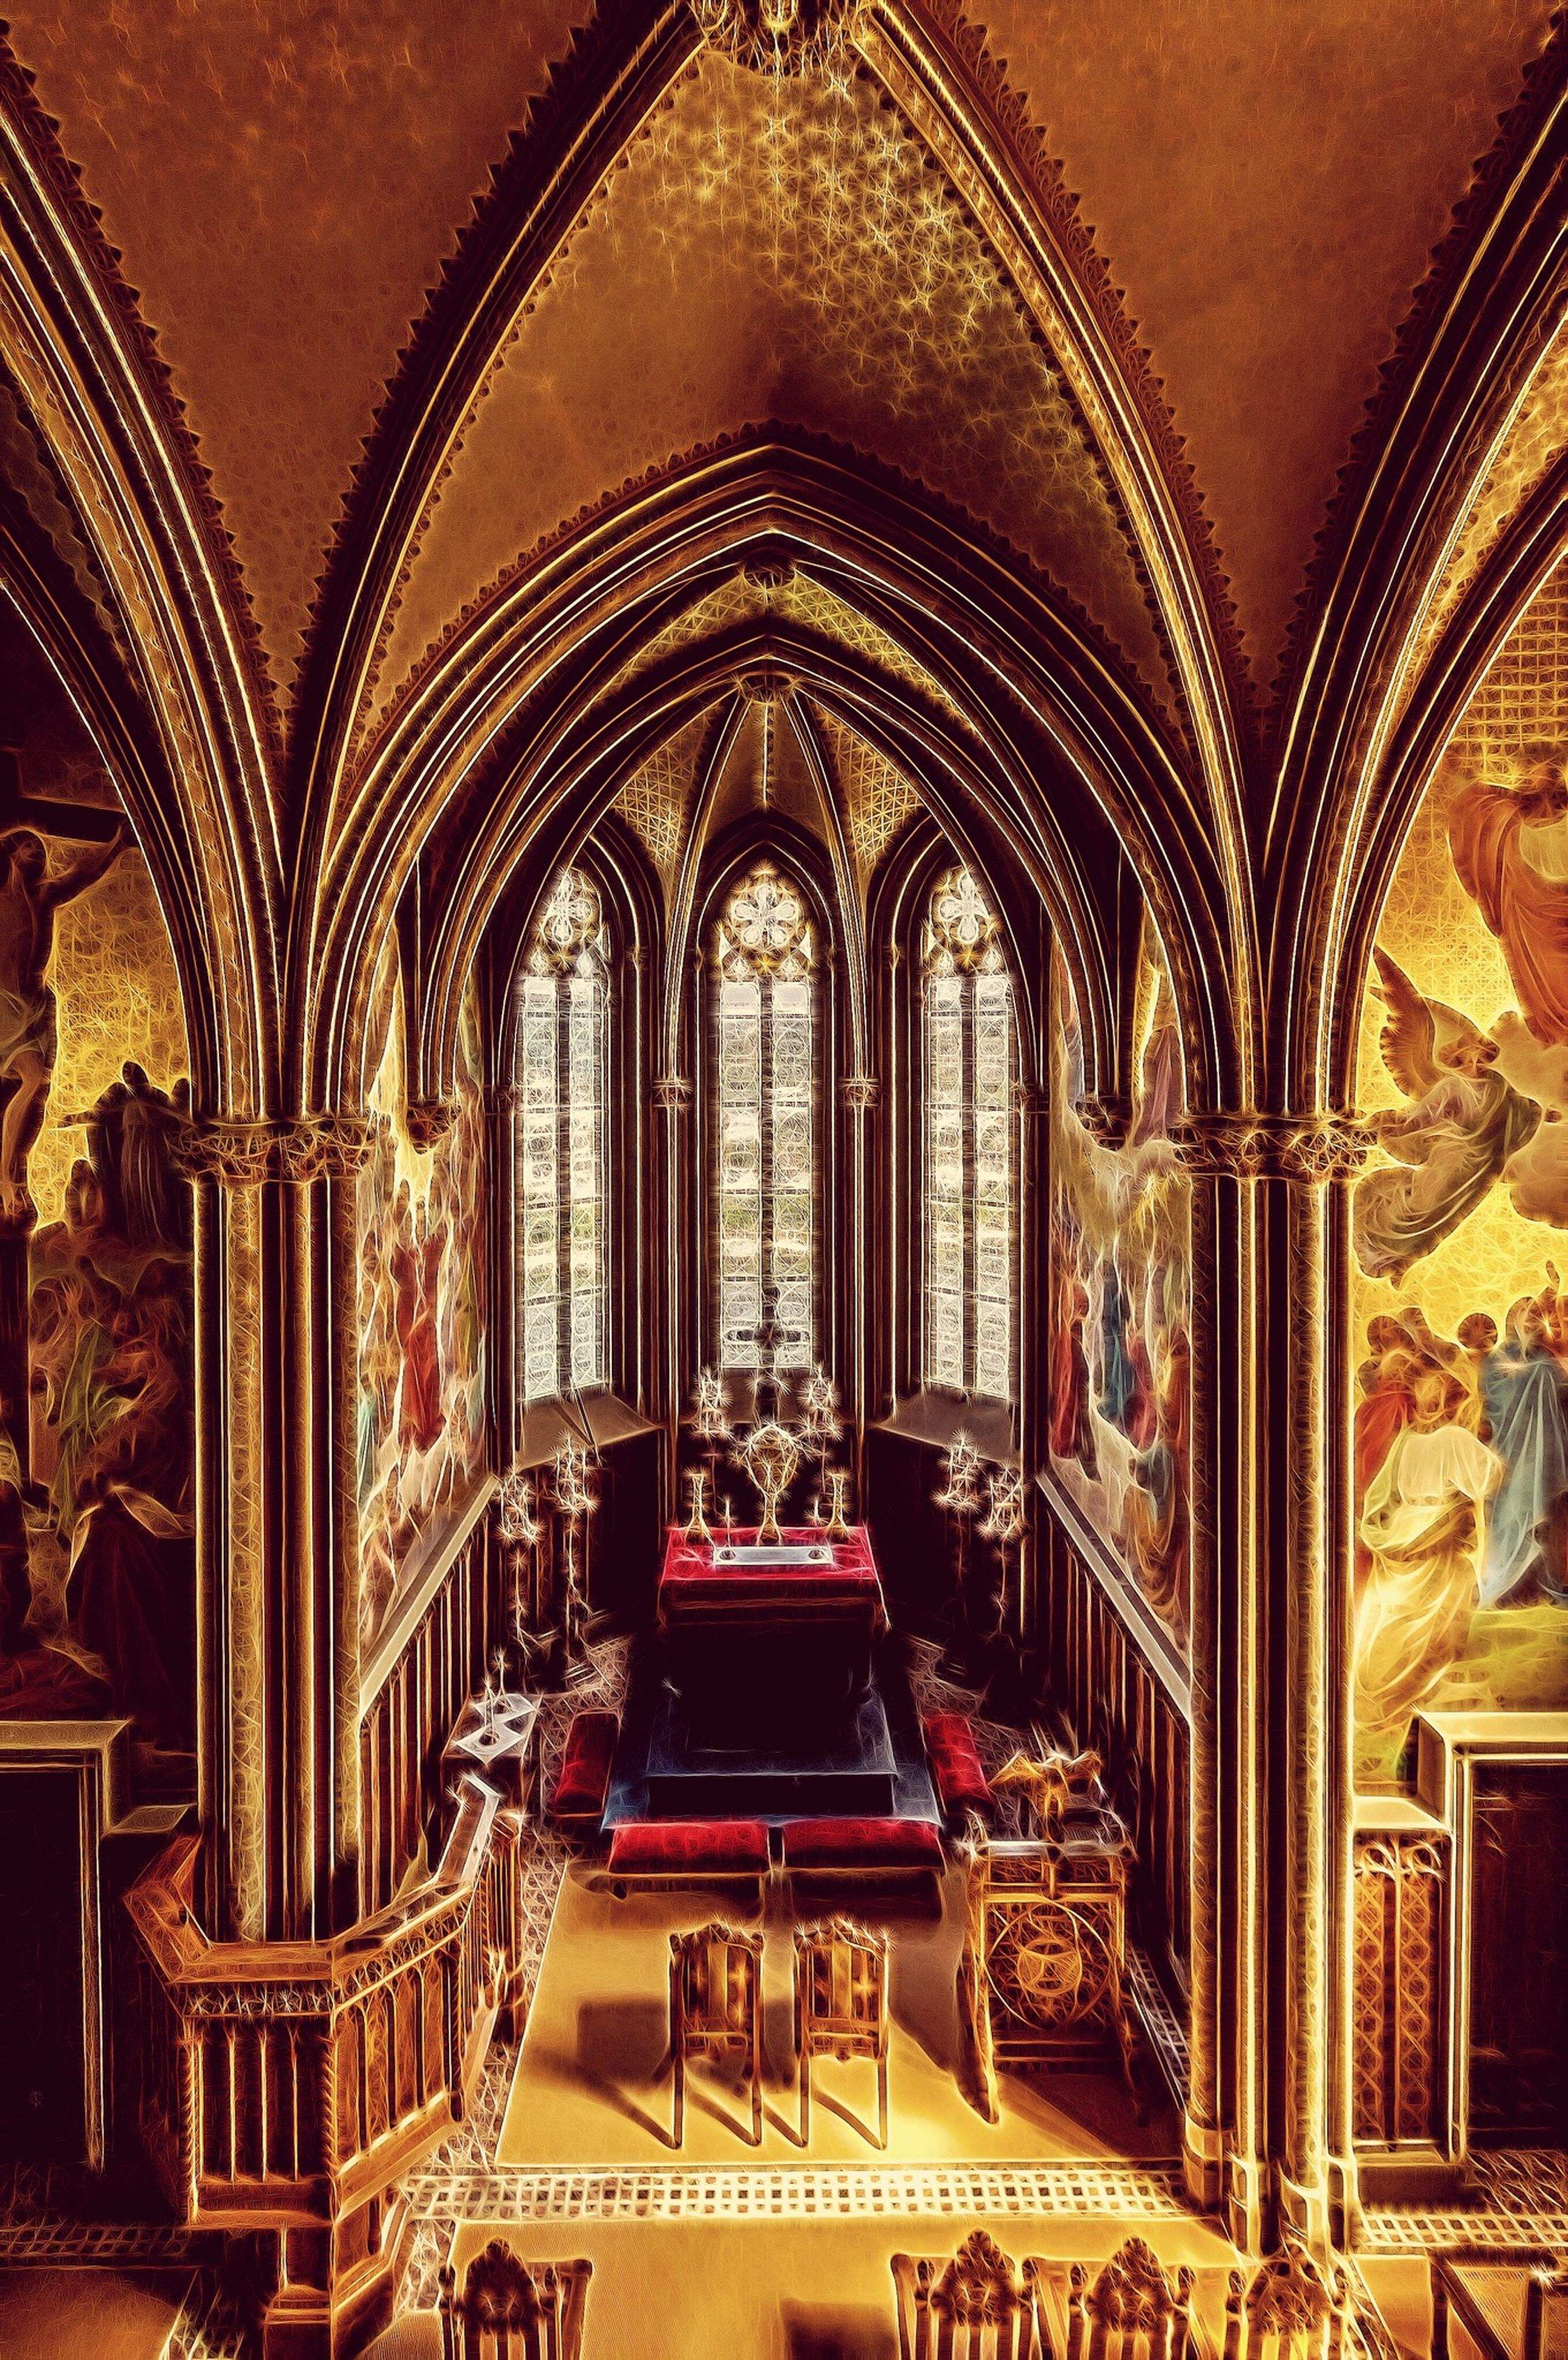 indoors, place of worship, religion, spirituality, church, arch, architecture, ornate, built structure, ceiling, temple - building, interior, art and craft, art, design, cathedral, creativity, cultures